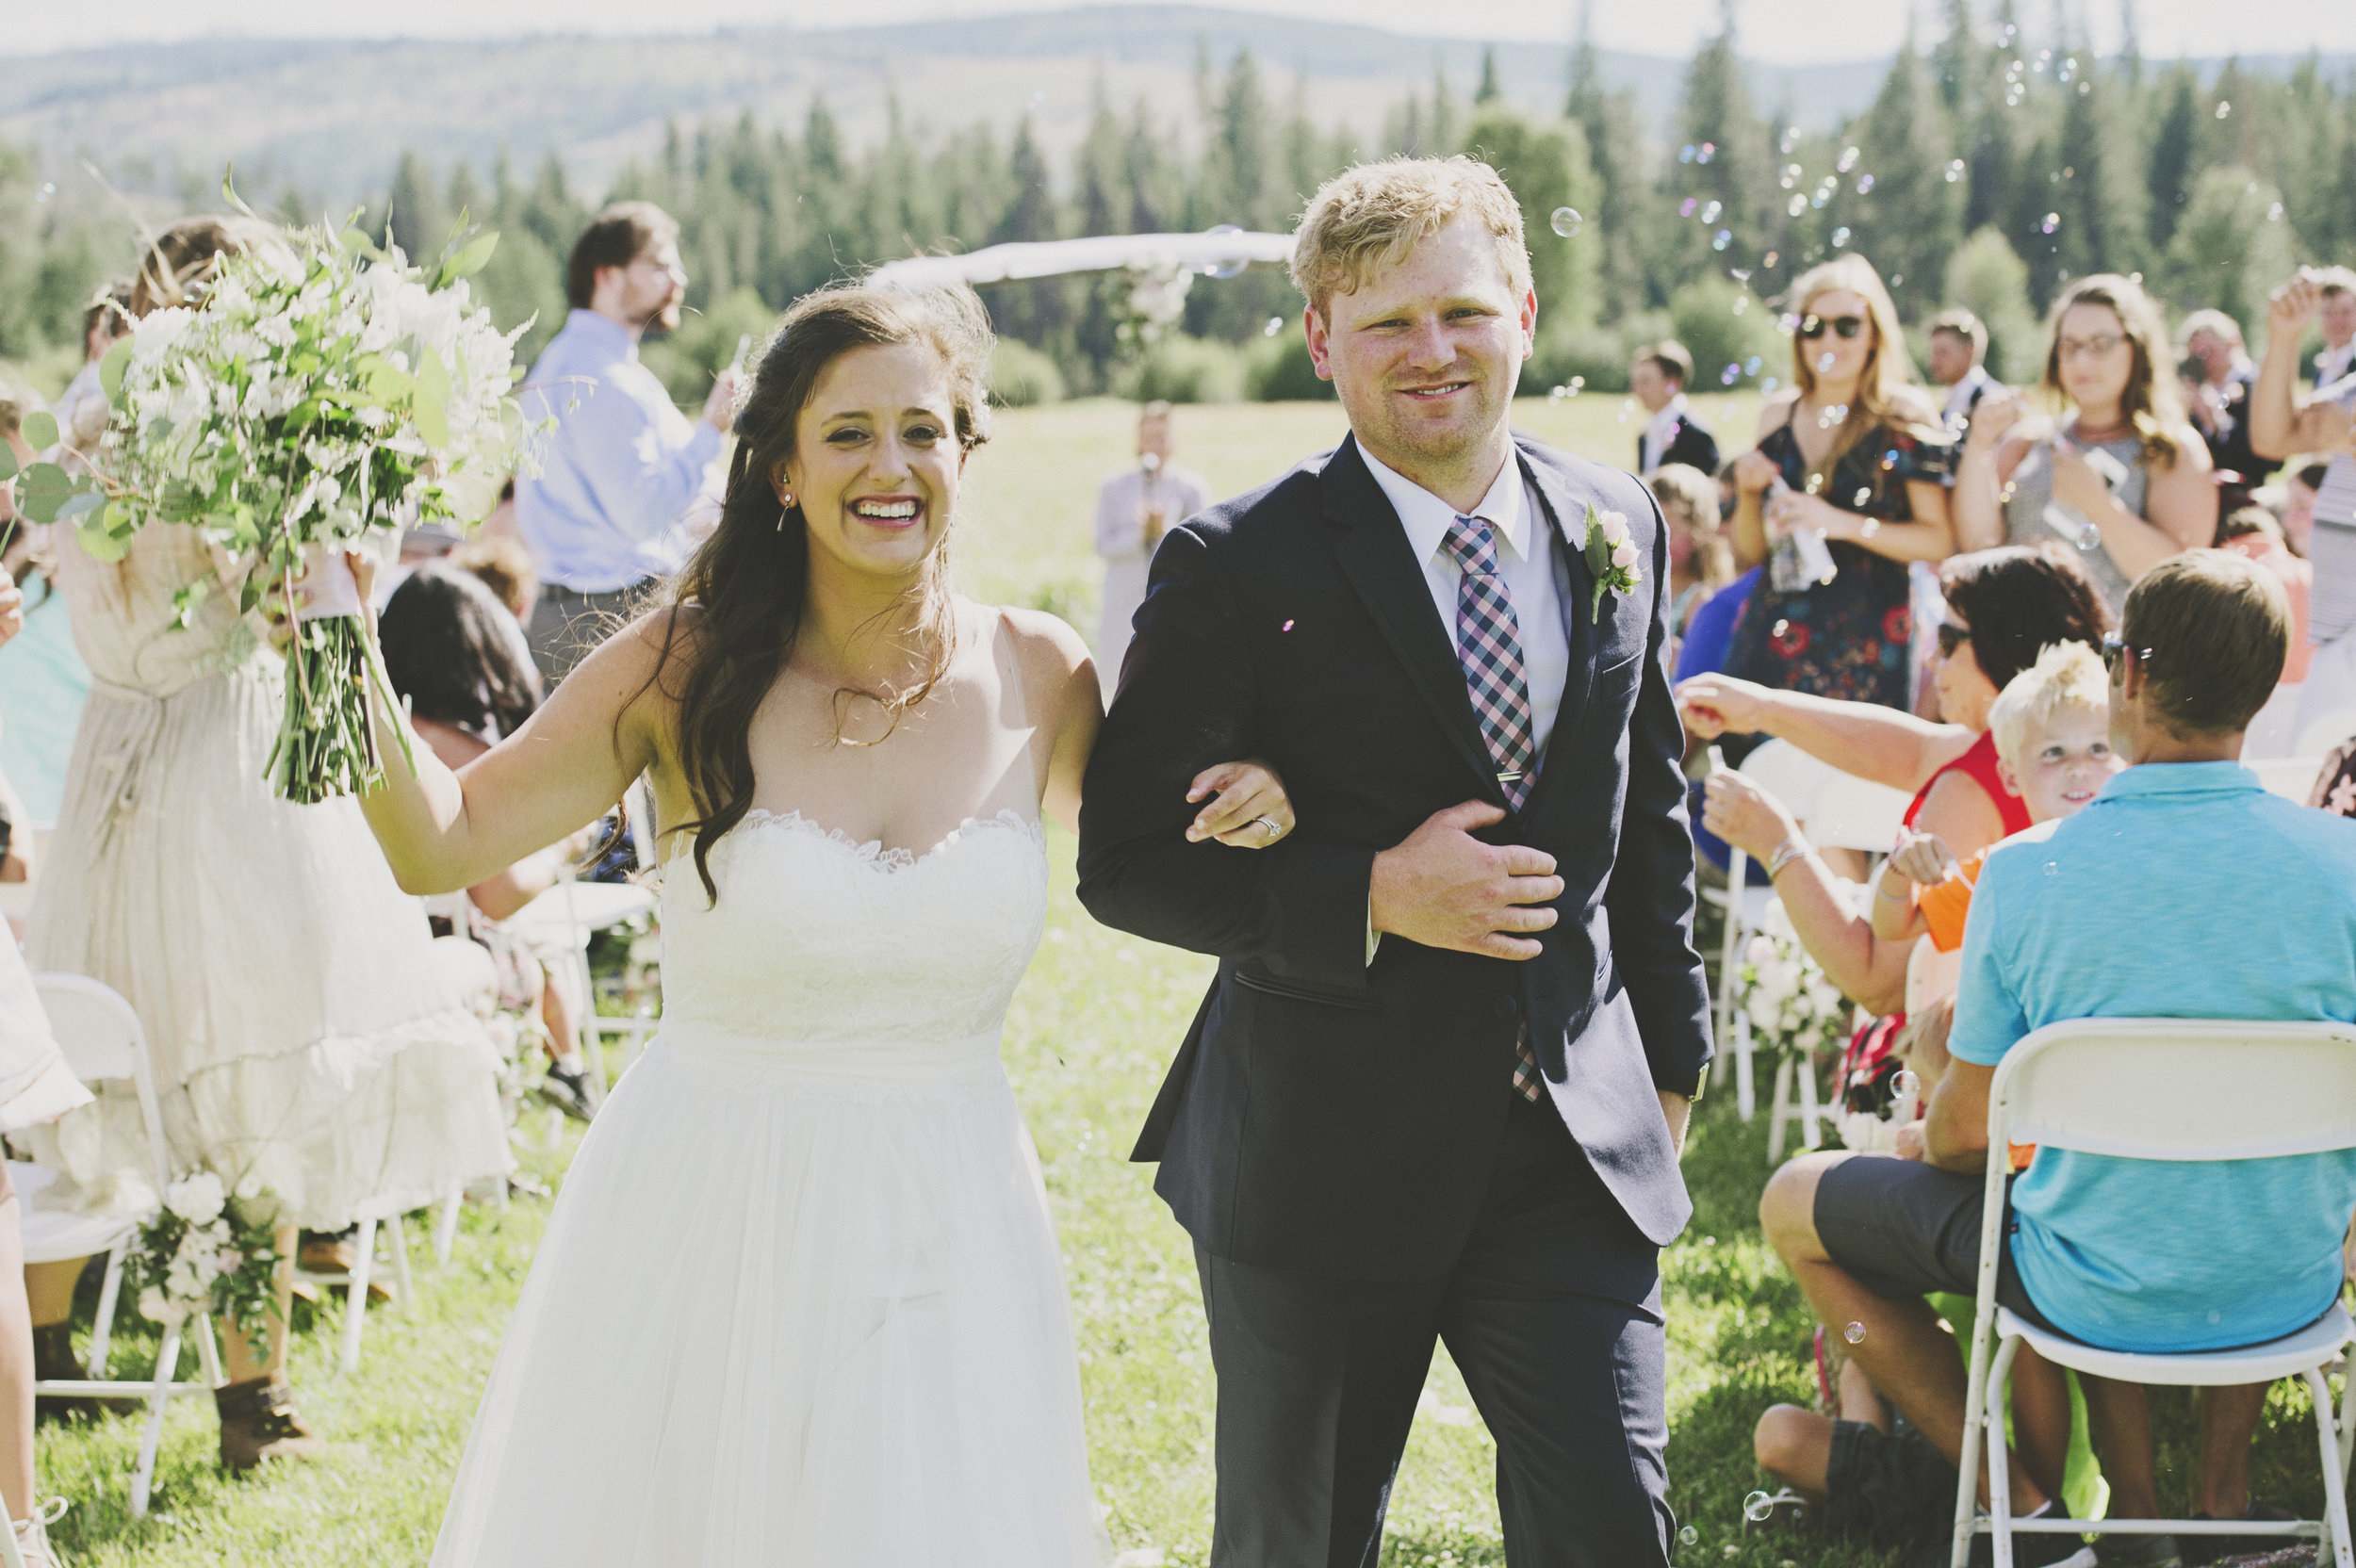 Chloe Hurwitz + Kiefer Martin Wedding_Grey Wolf Ranch_Kelsey Lane Photography1691 copy.jpg